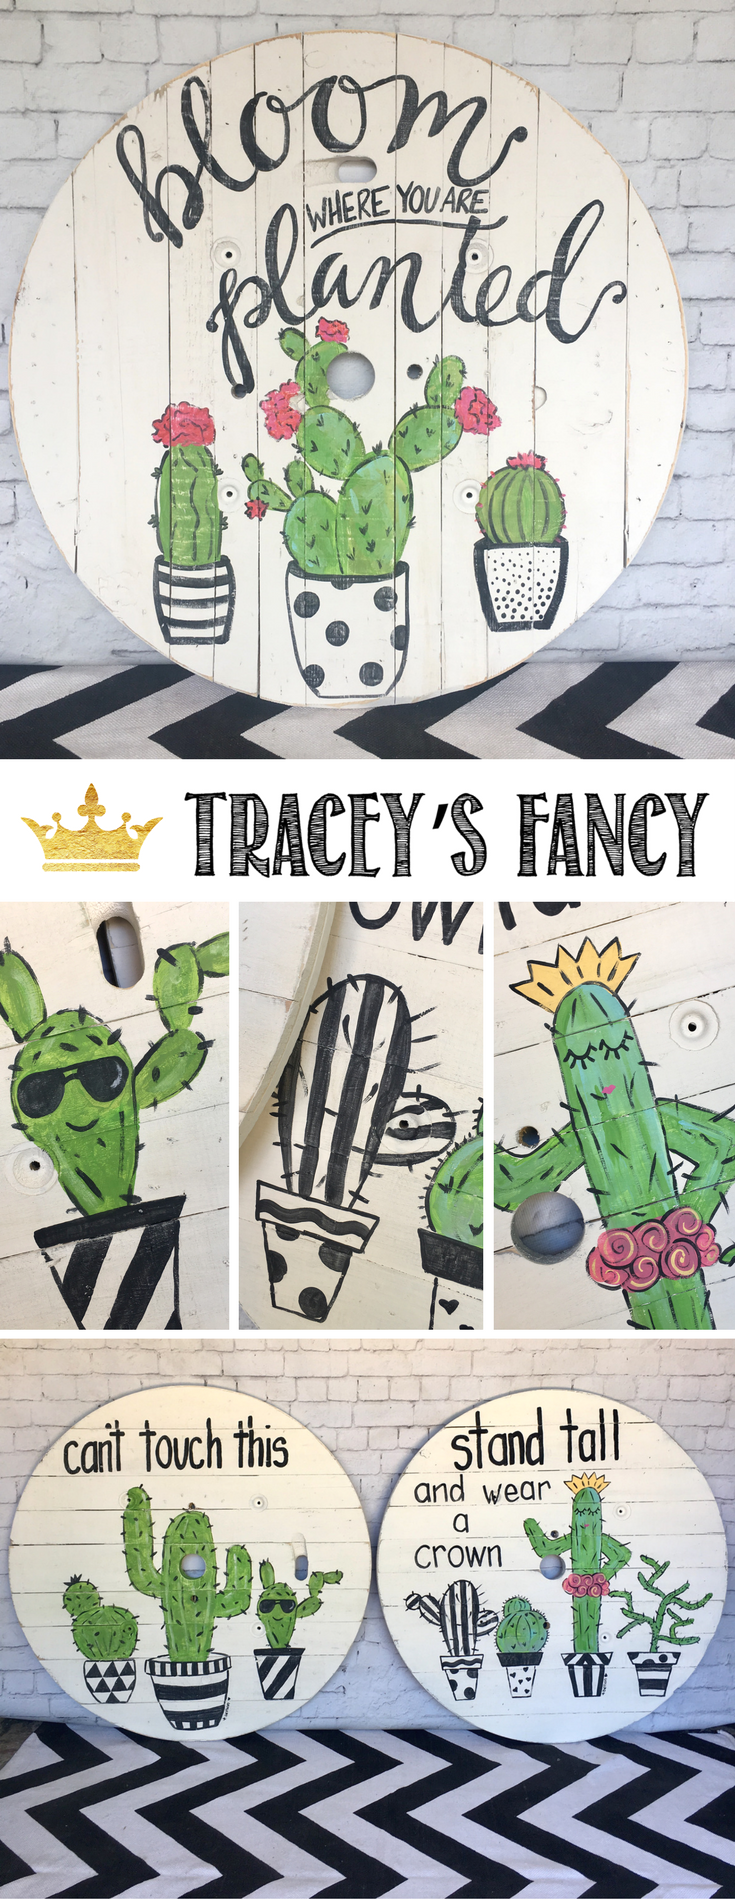 Funky Cactus Spool Art Handpainted by Tracey's Fancy | Upcycled Cable Spool Art | Black and White and Whimsical Decor | Nursery Decor Ideas | Nursery Art |